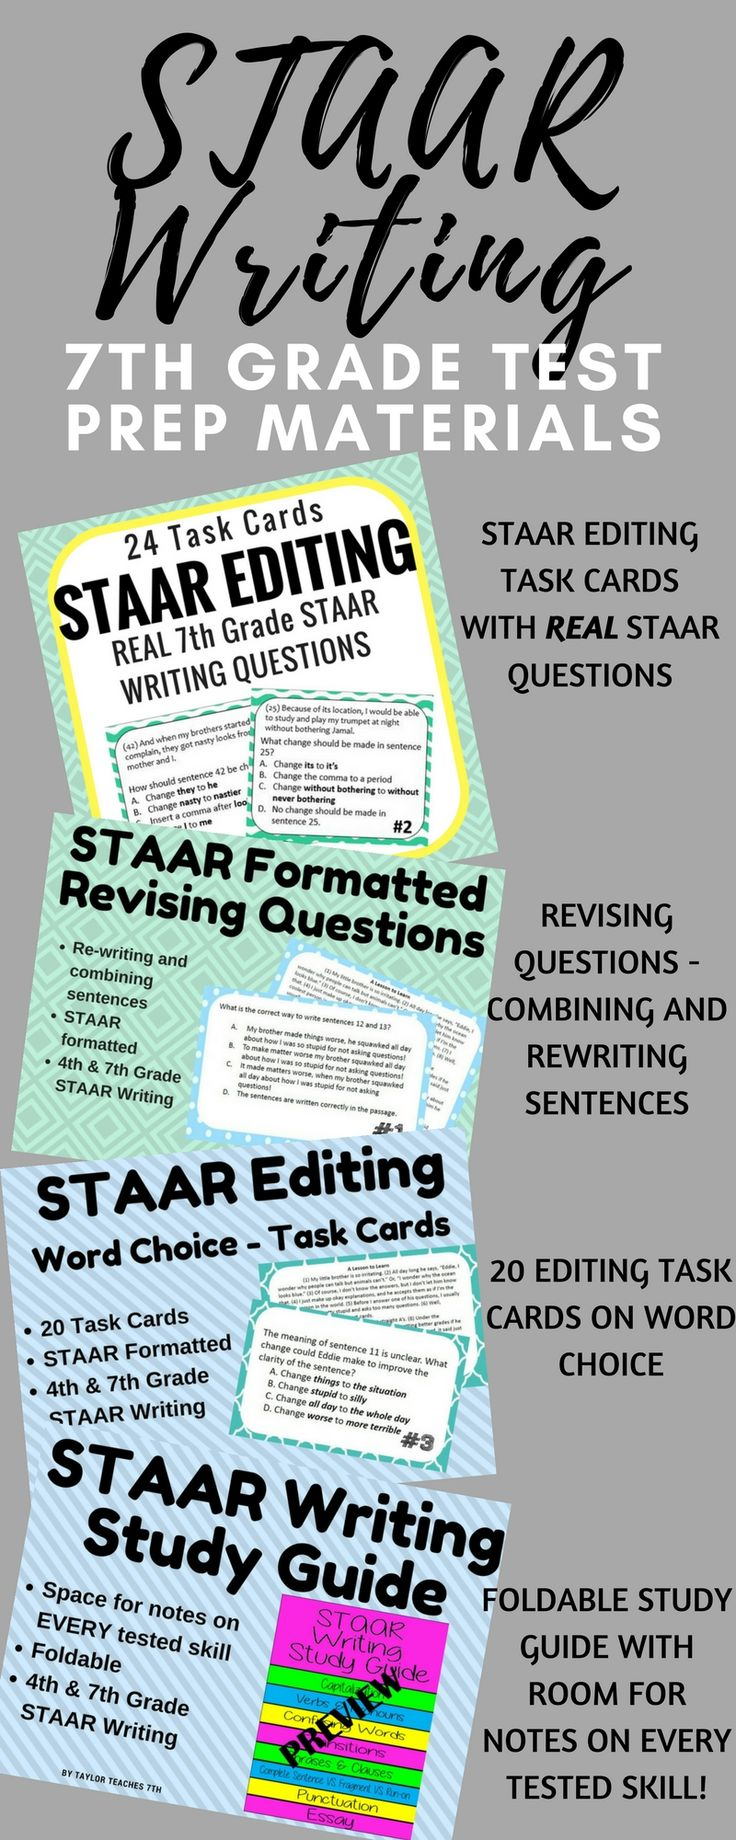 7th grade staar writing test prep